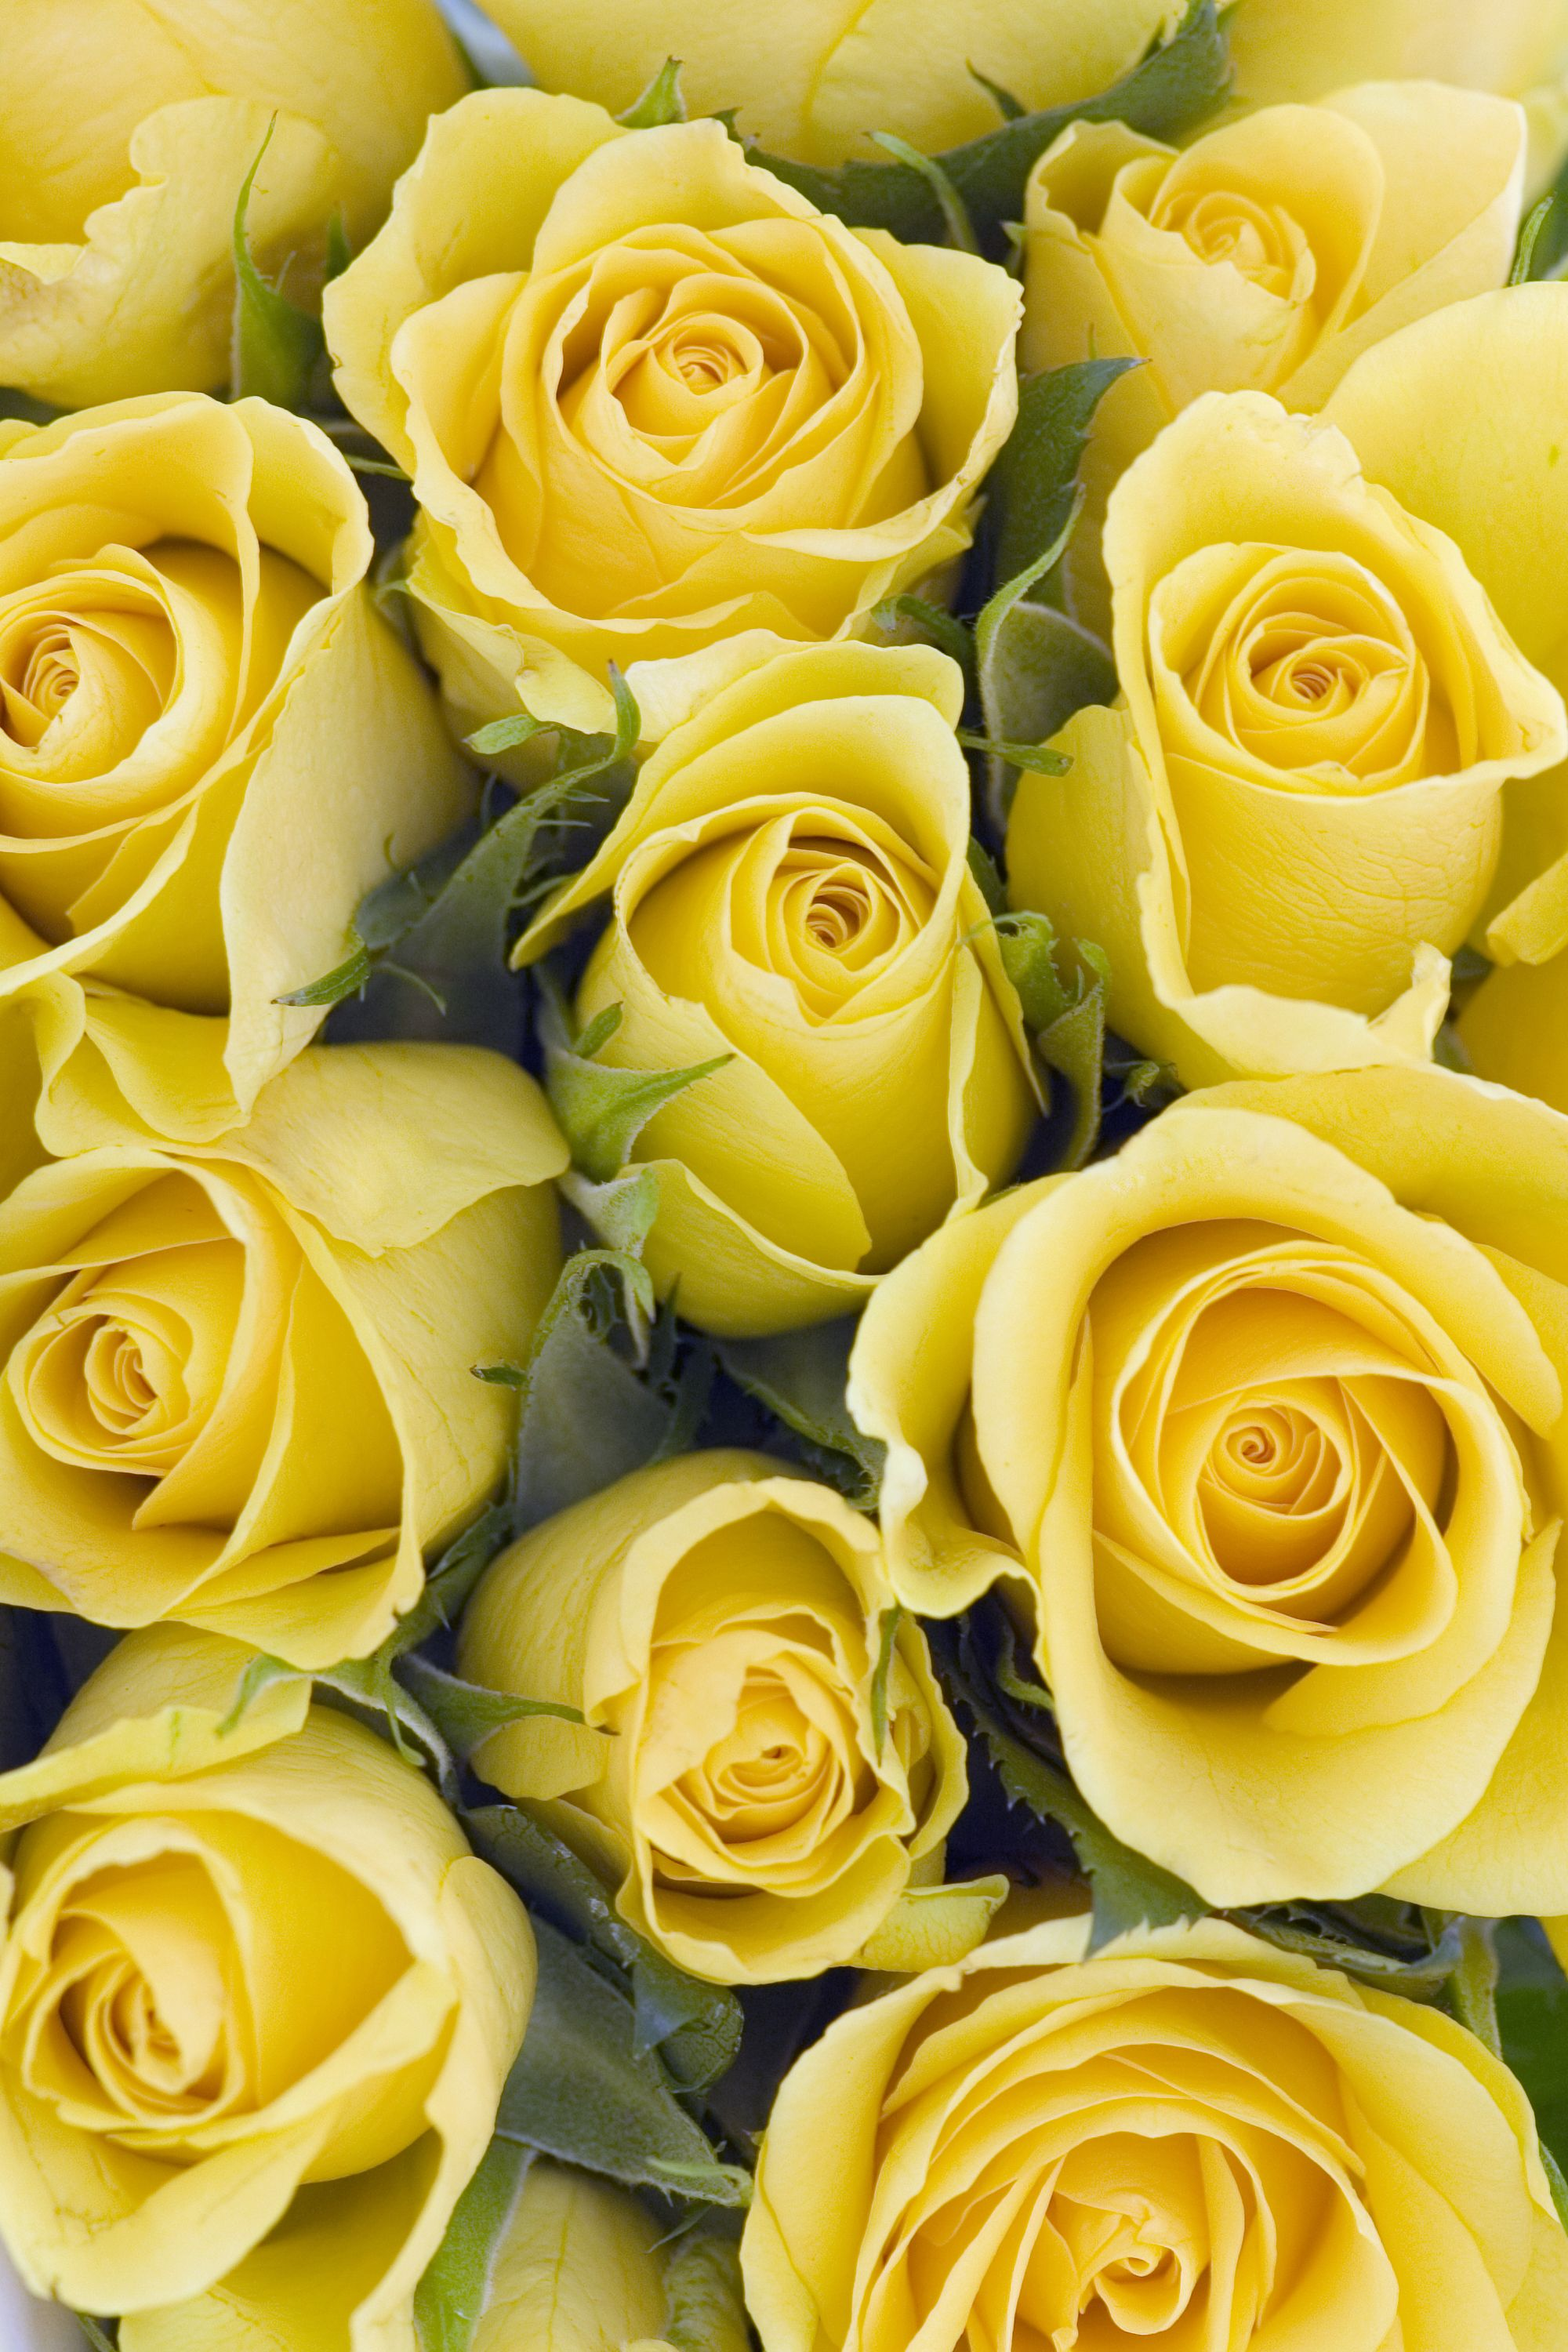 The meaning of every rose color yellow roses flowers and rose yellow roses mightylinksfo